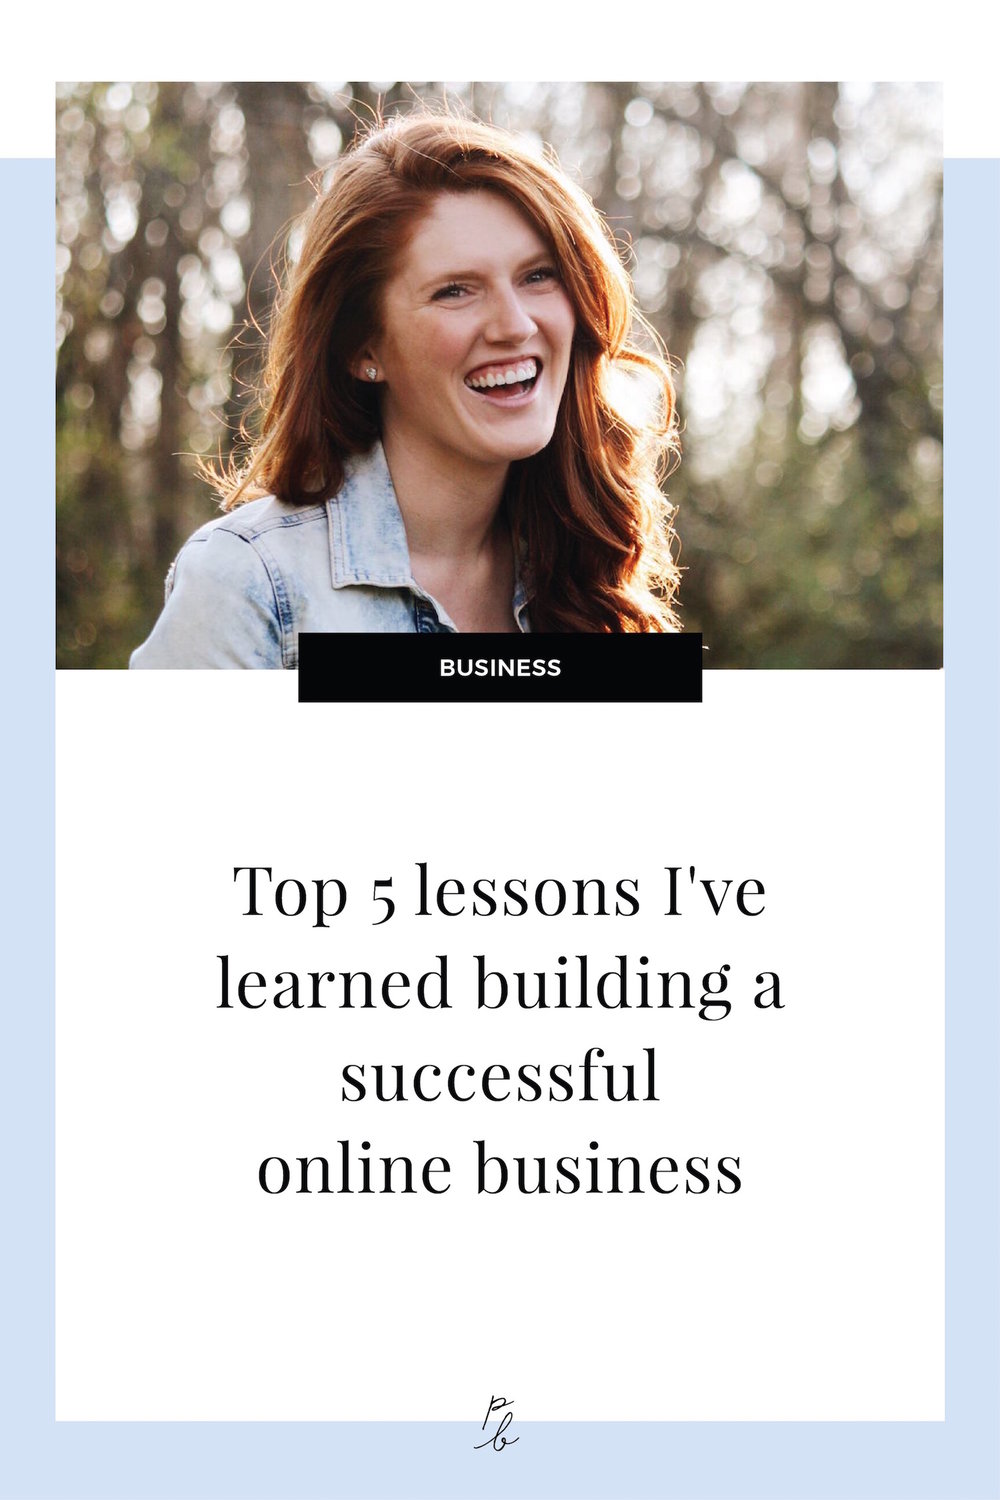 Top 5 lessons I've learned building a successful online business.jpg